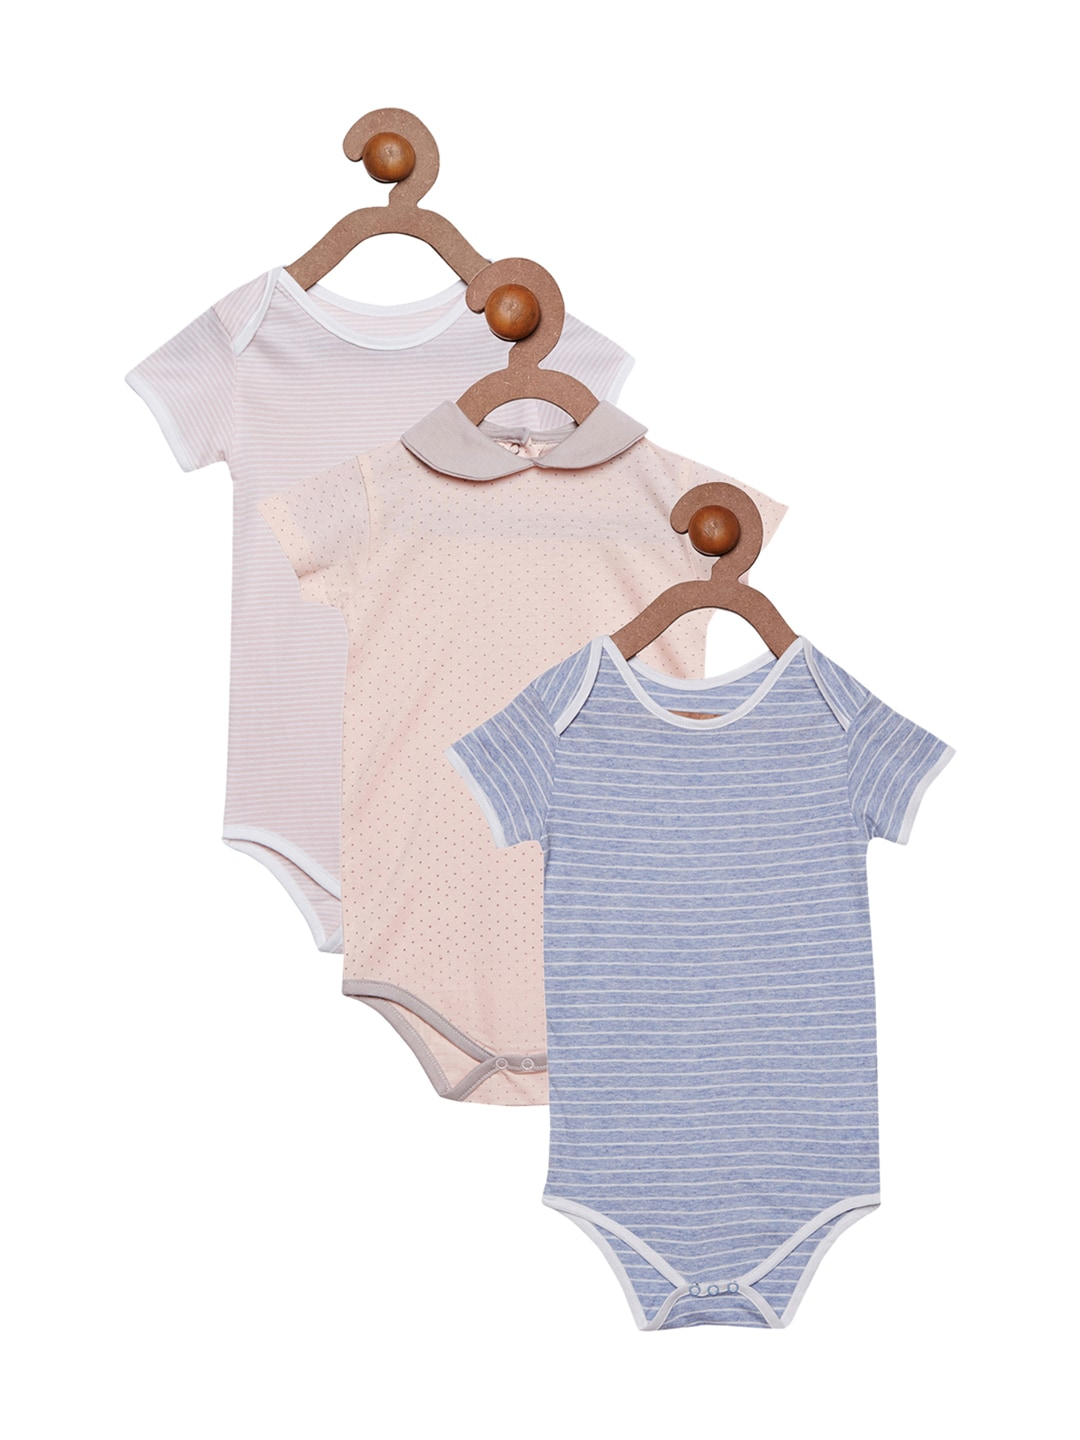 berrytree Kids Pack of 3 Bodysuits image